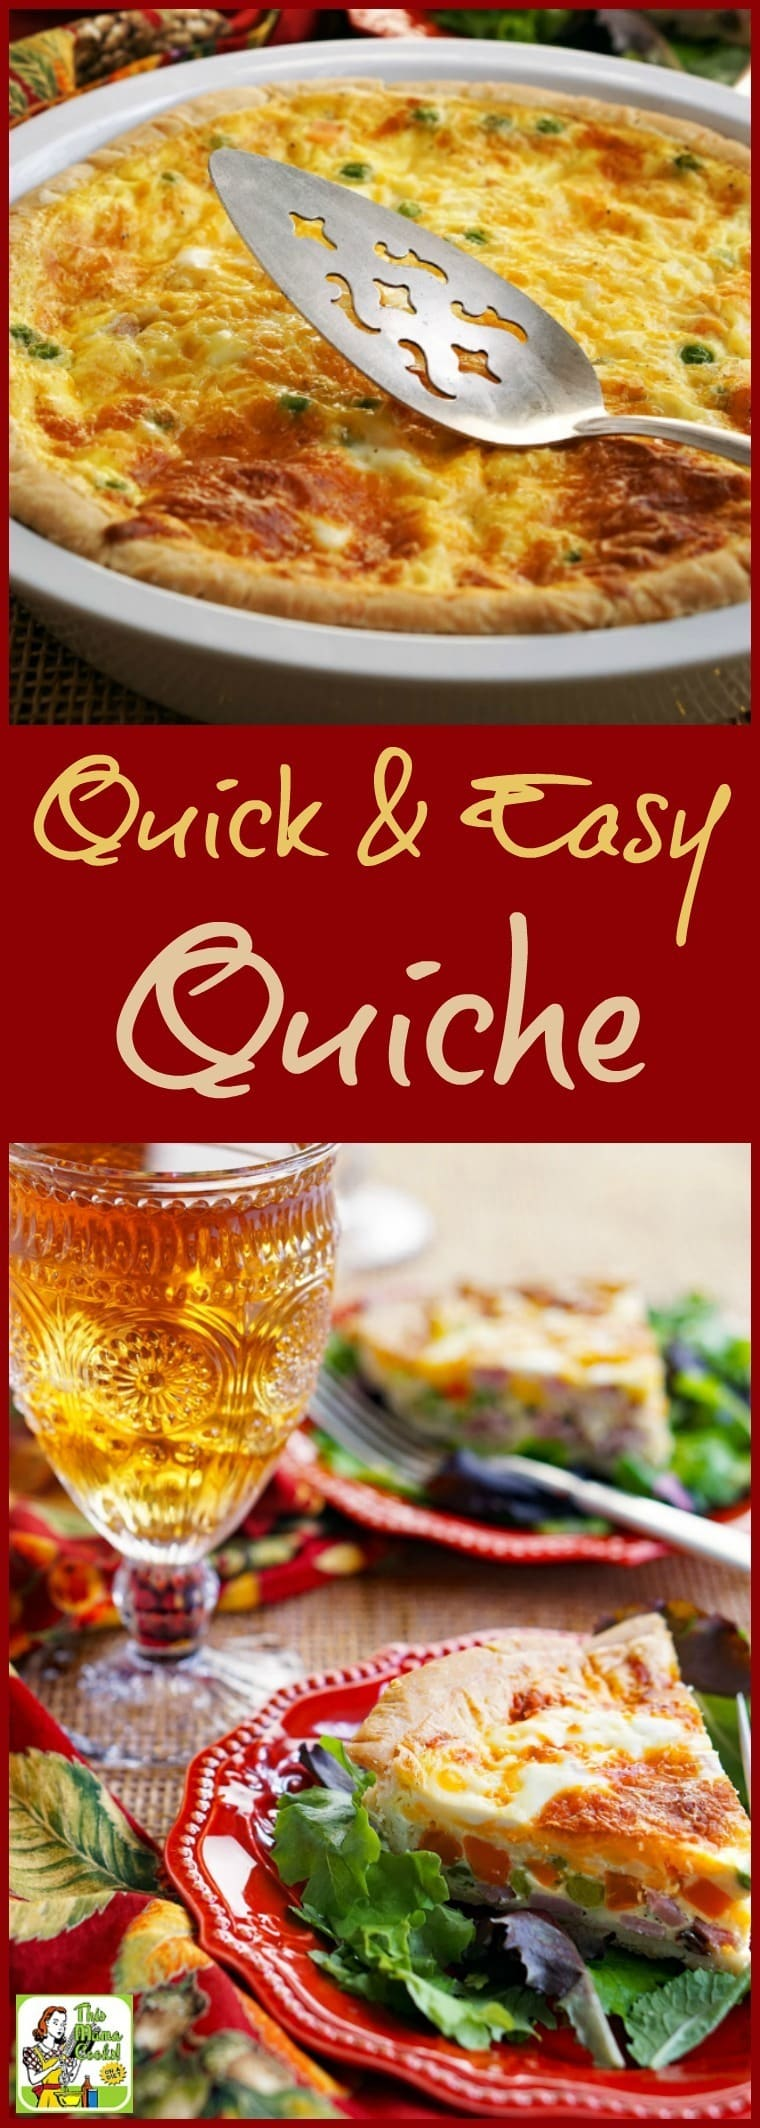 This Quick Quiche recipe can be made with leftovers or for parties. Click to get this simple quiche recipe dinner, brunch, breakfast or brinner recipe. A simple quiche recipe can be made vegetarian or gluten free, too! #quiche #glutenfree #brunch #breakfast #brinner #dinner #onepot #leftovers #vegetarian